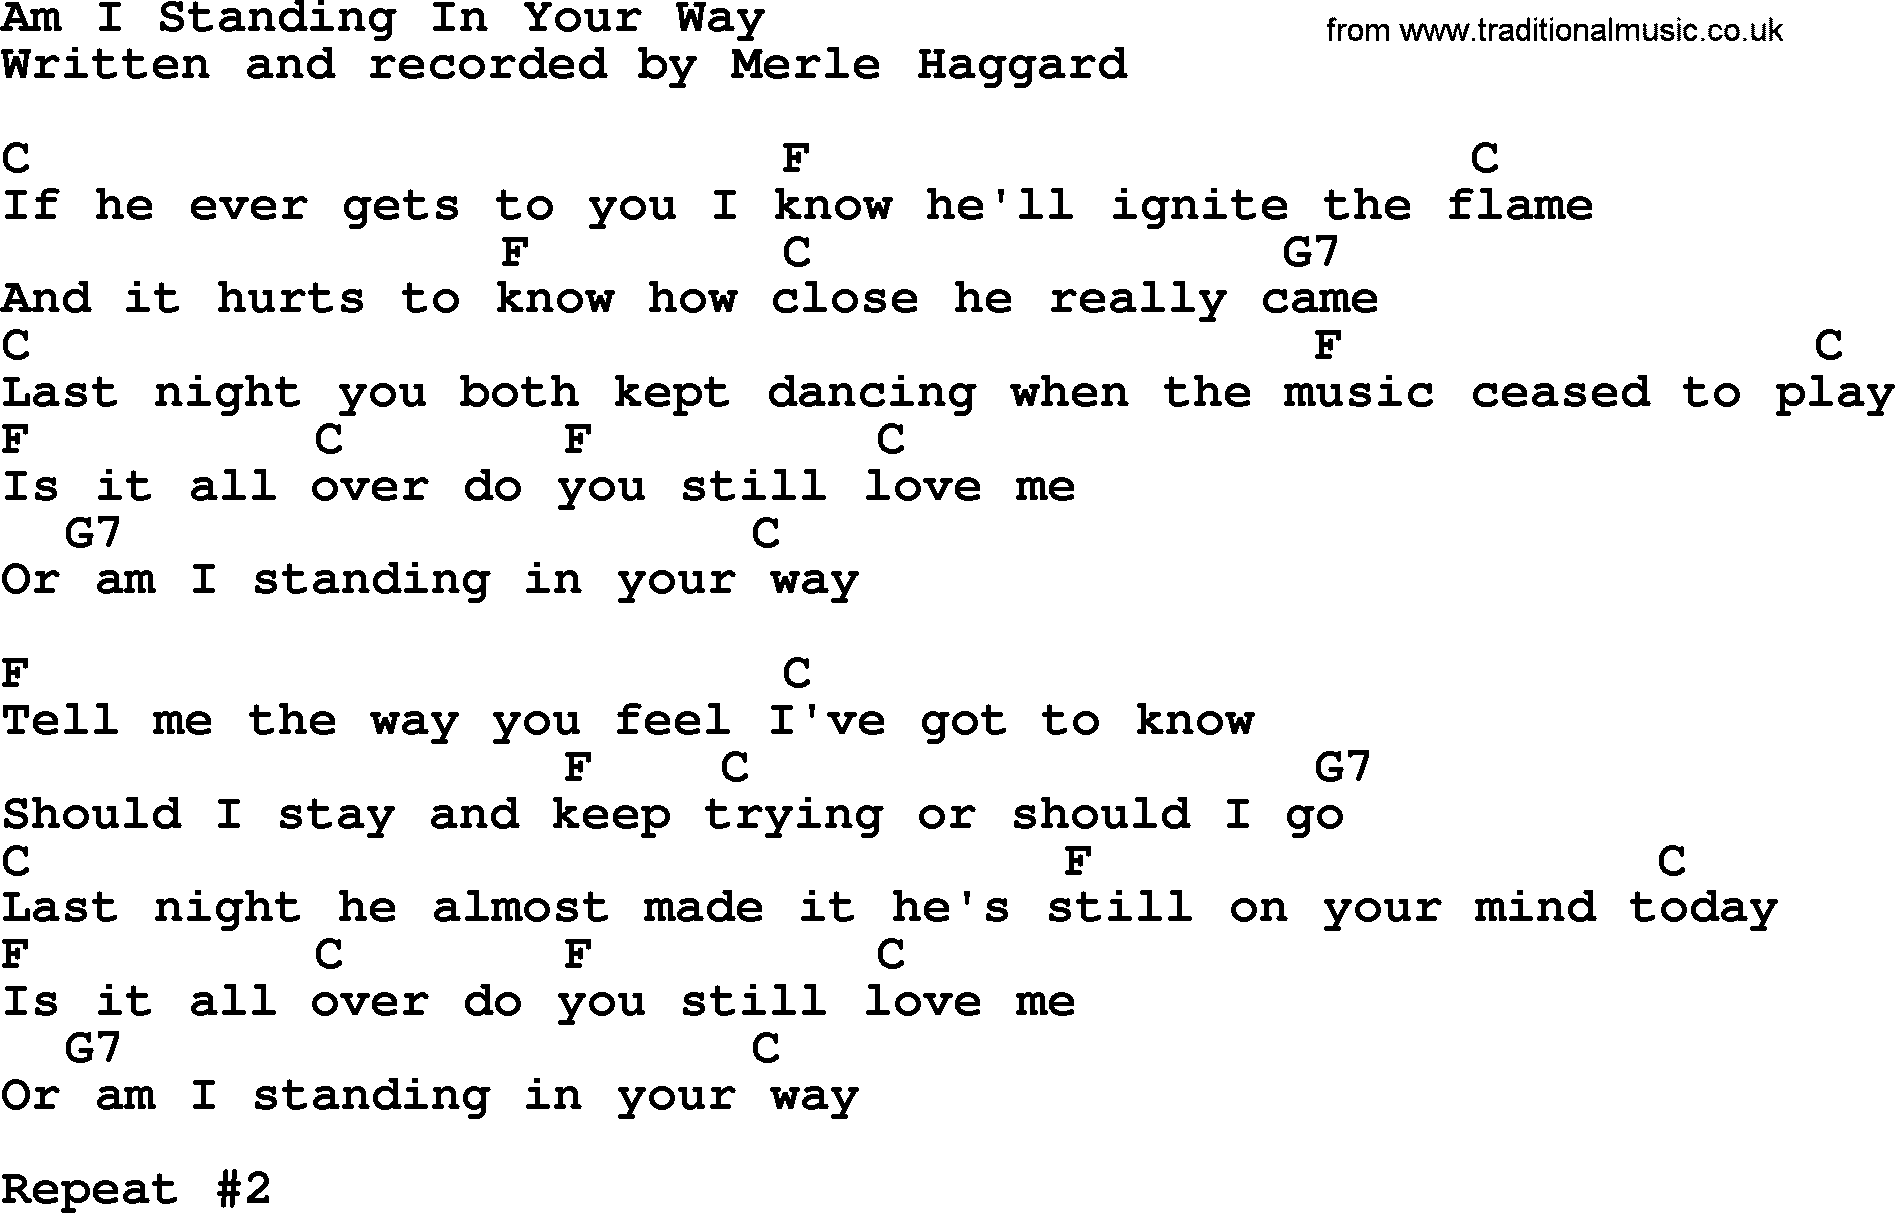 Am I Standing In Your Way by Merle Haggard - lyrics and chords